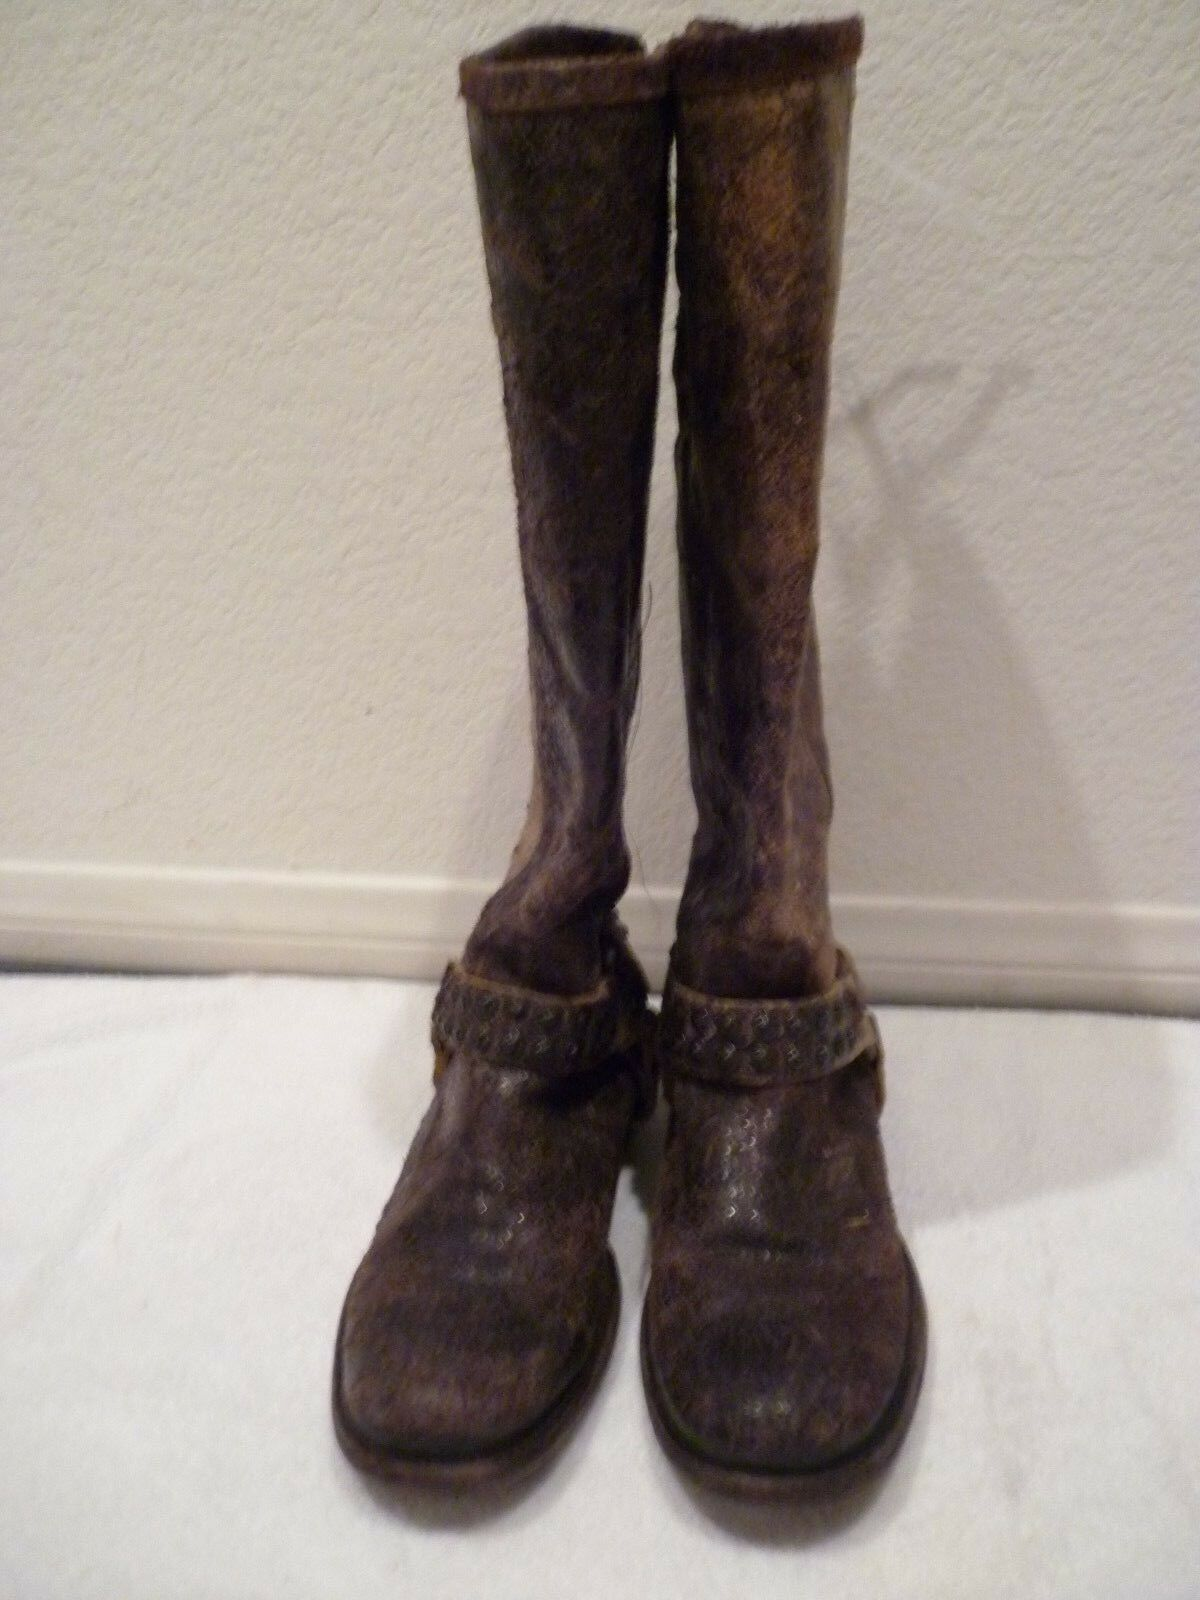 $398 Distressed FRYE Tall Phillip Studded Distressed $398 Chocolate Braun Harness Stiefel SZ 6.5 fb11c3